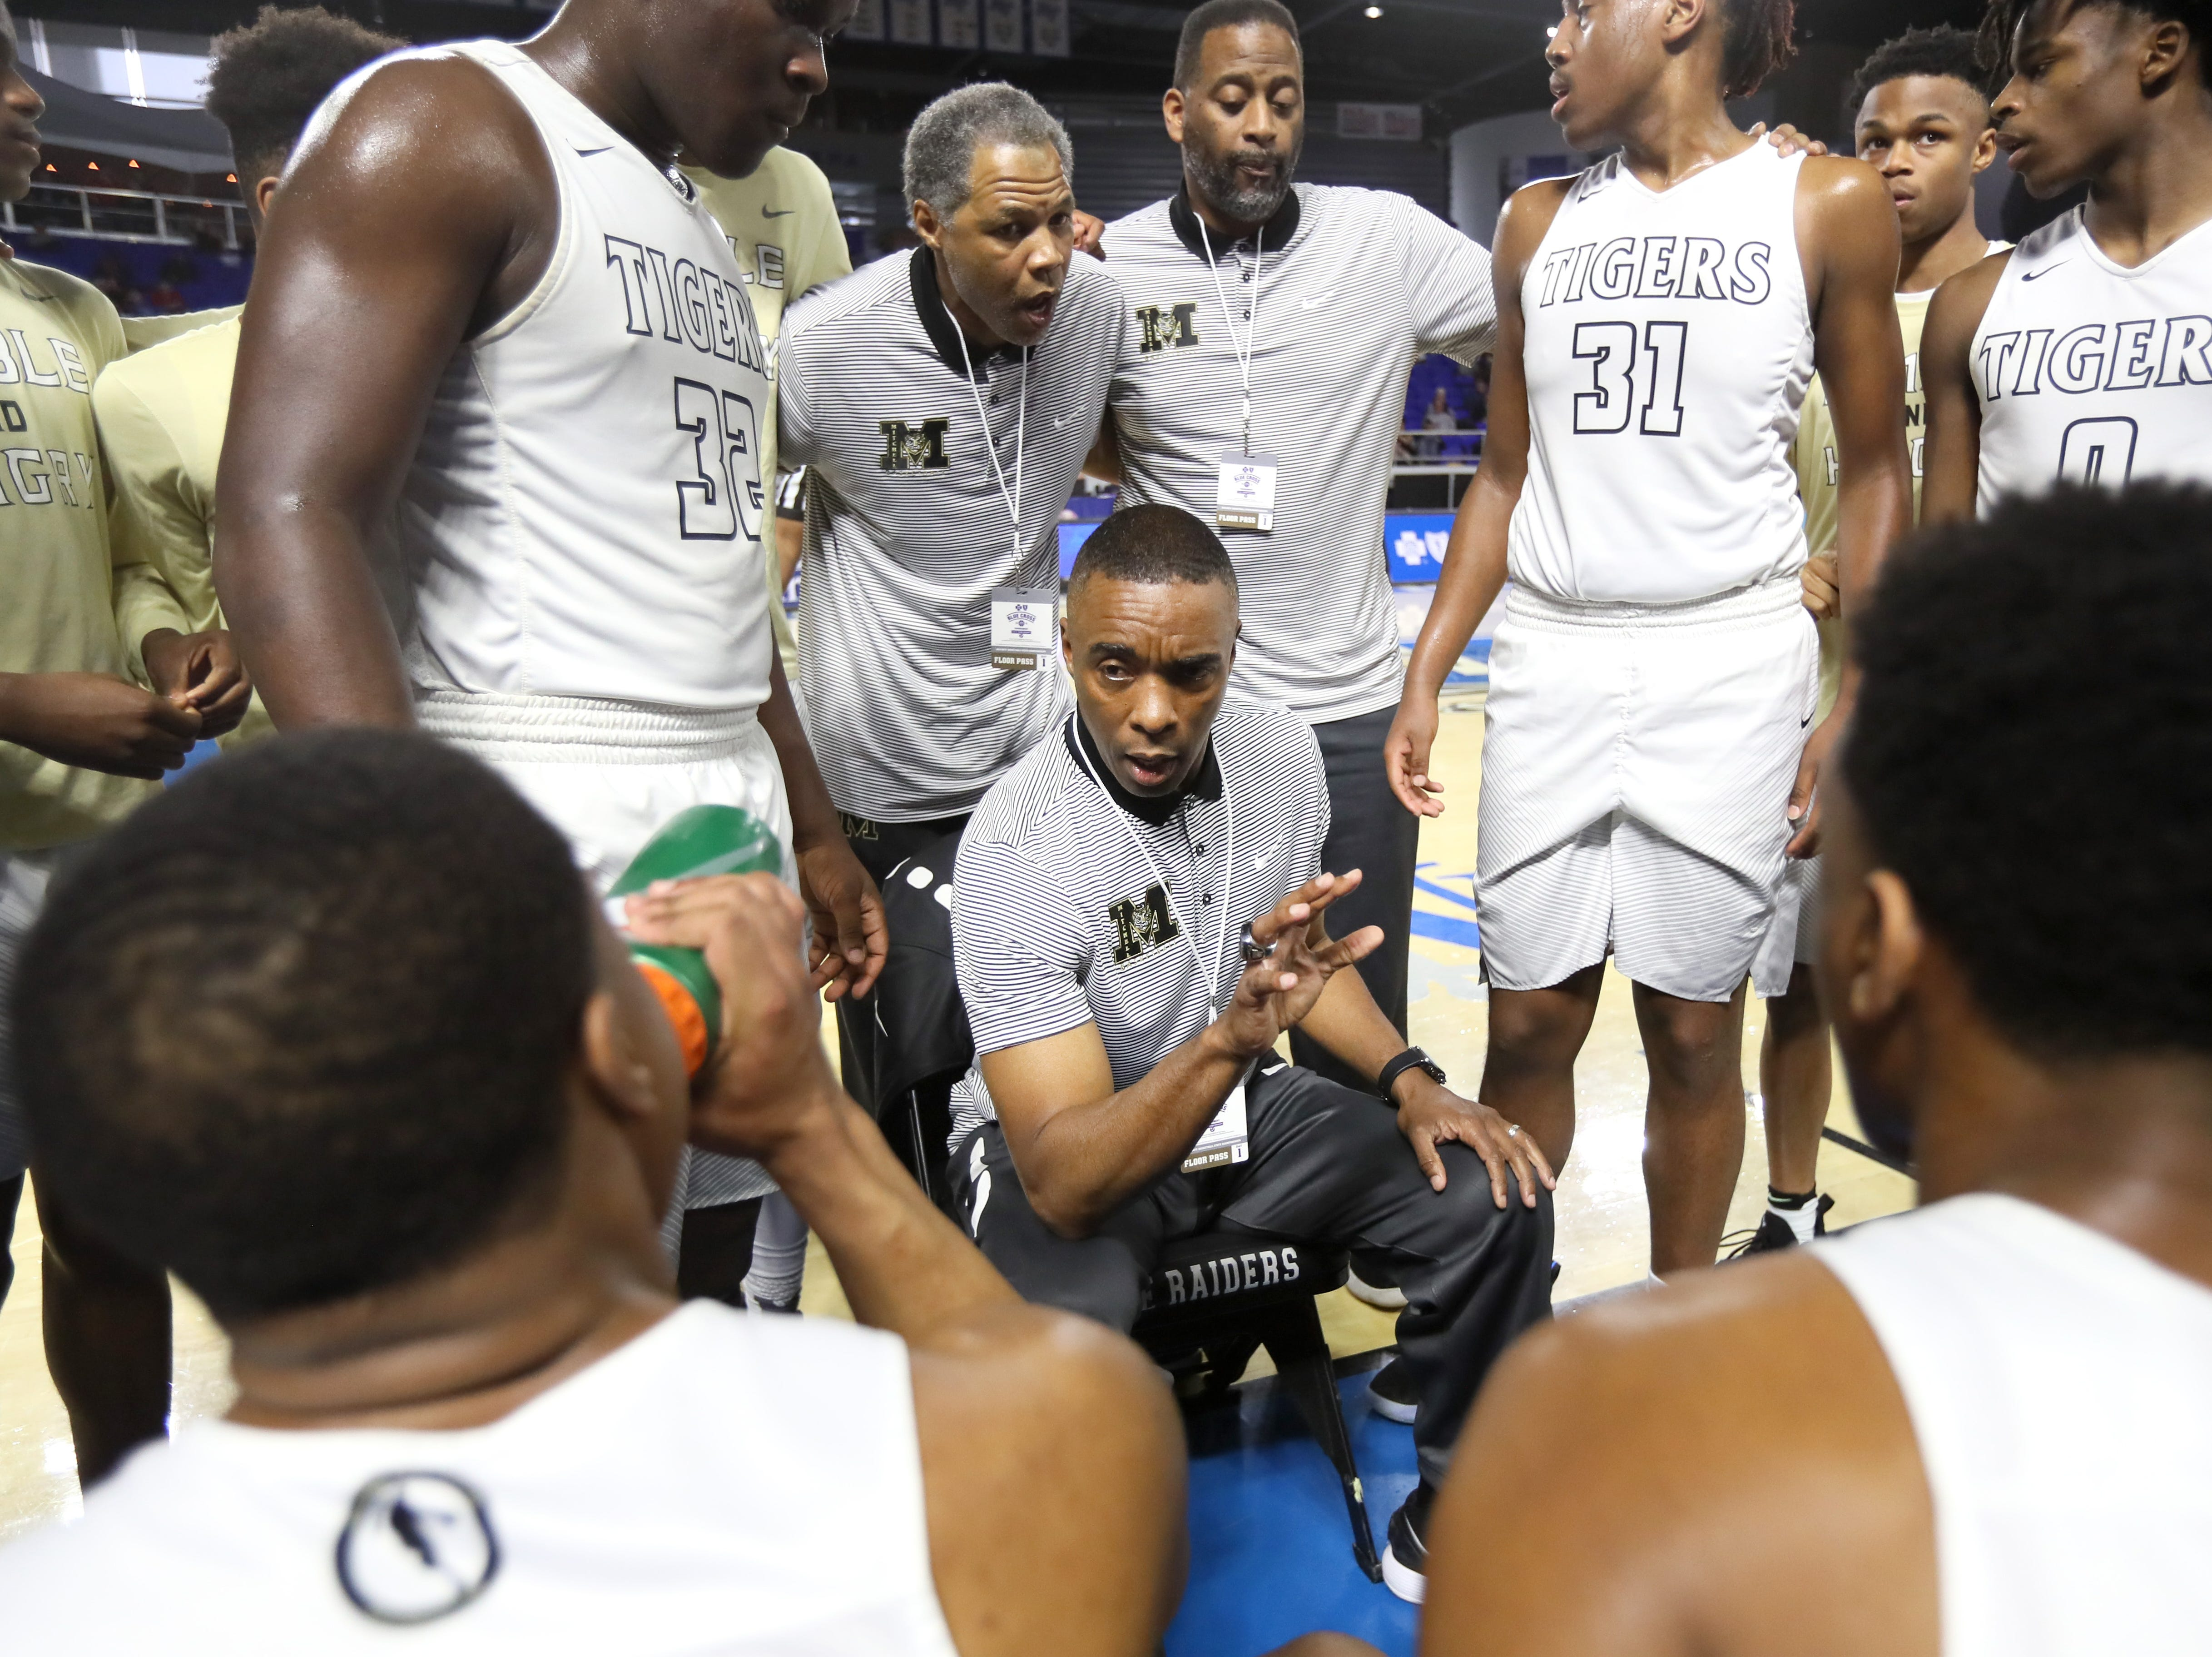 Mitchell Head Coach Andre Turner talks to his team during a timeout in their game against Fulton during the TSSAA Division I basketball state tournament in Murfreesboro on Wednesday, March 13, 2019.